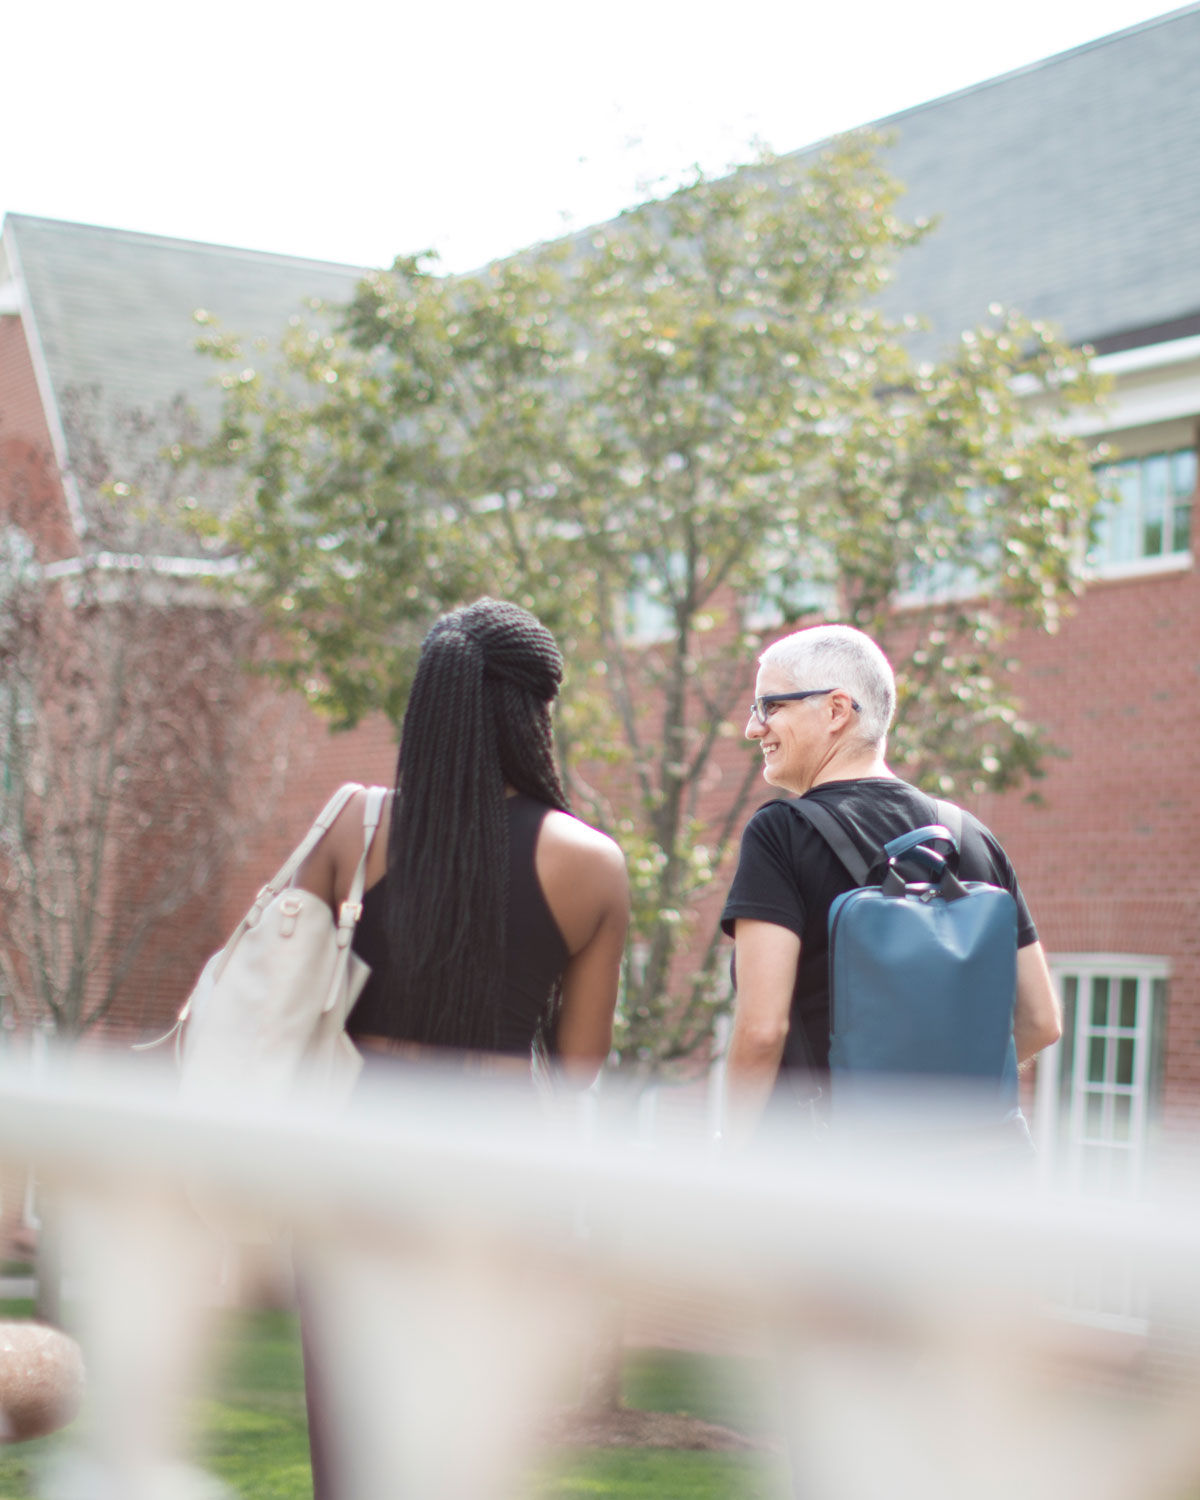 Professor Margarita Diaz walks with a student outside the Center for Communications and Engineering building